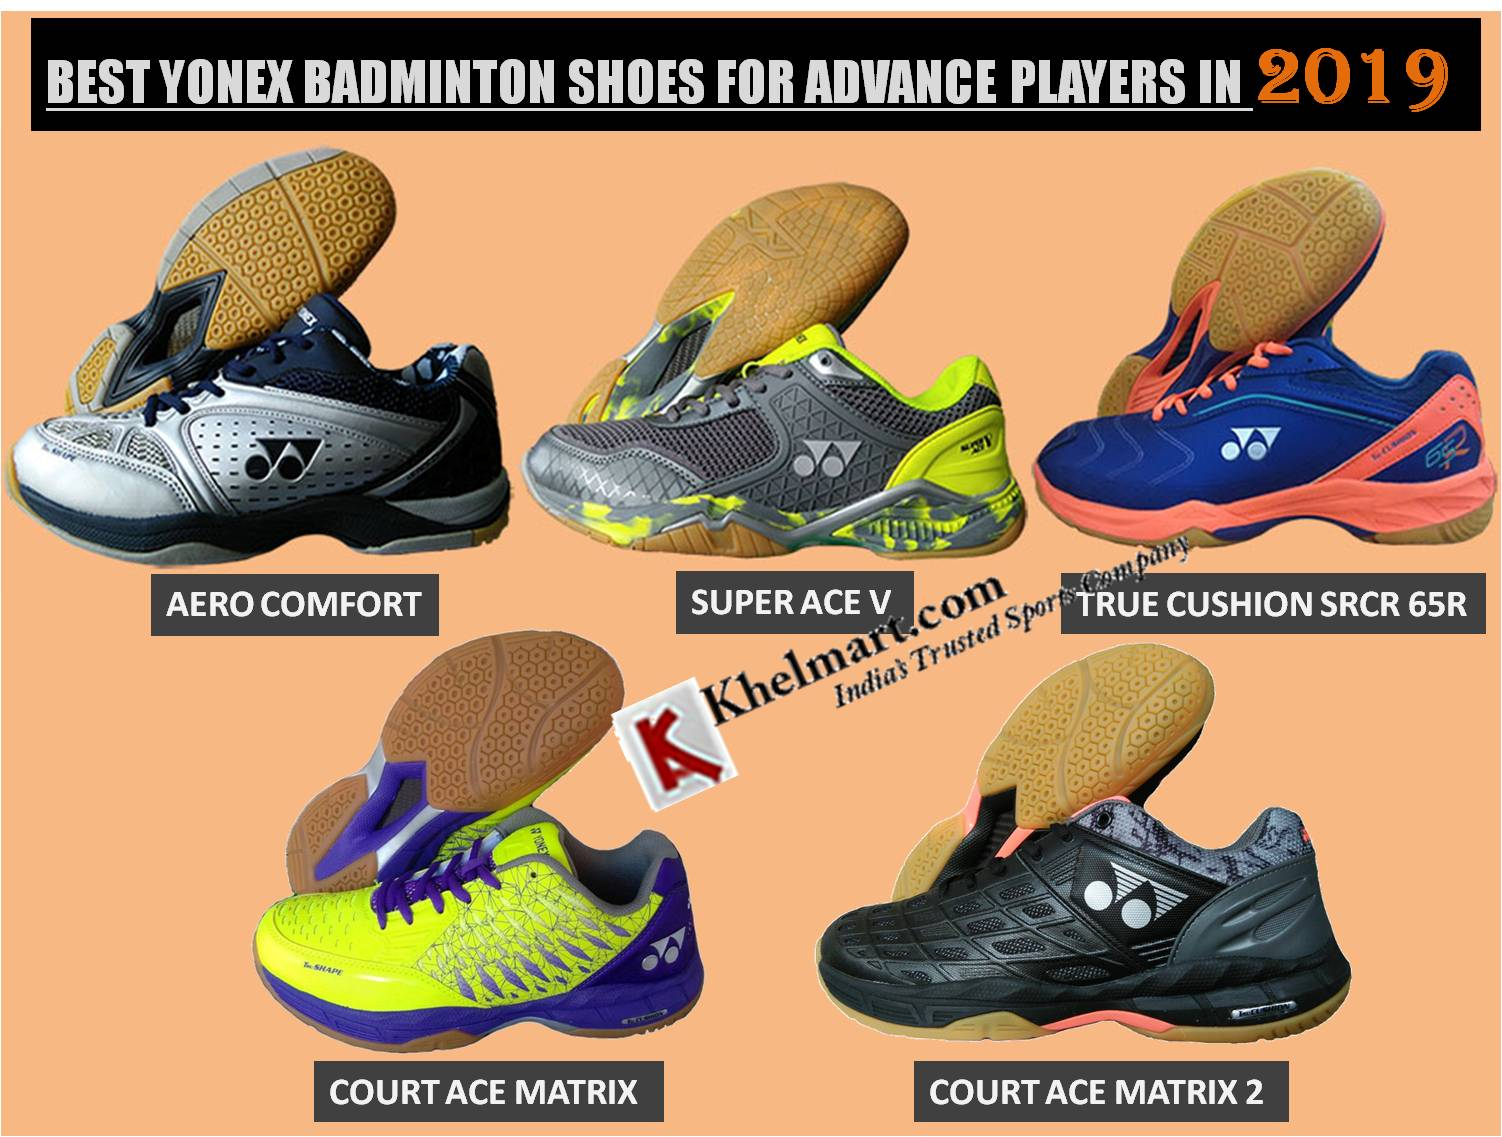 Best Yonex Badminton shoes for advance players in 2019.jpg